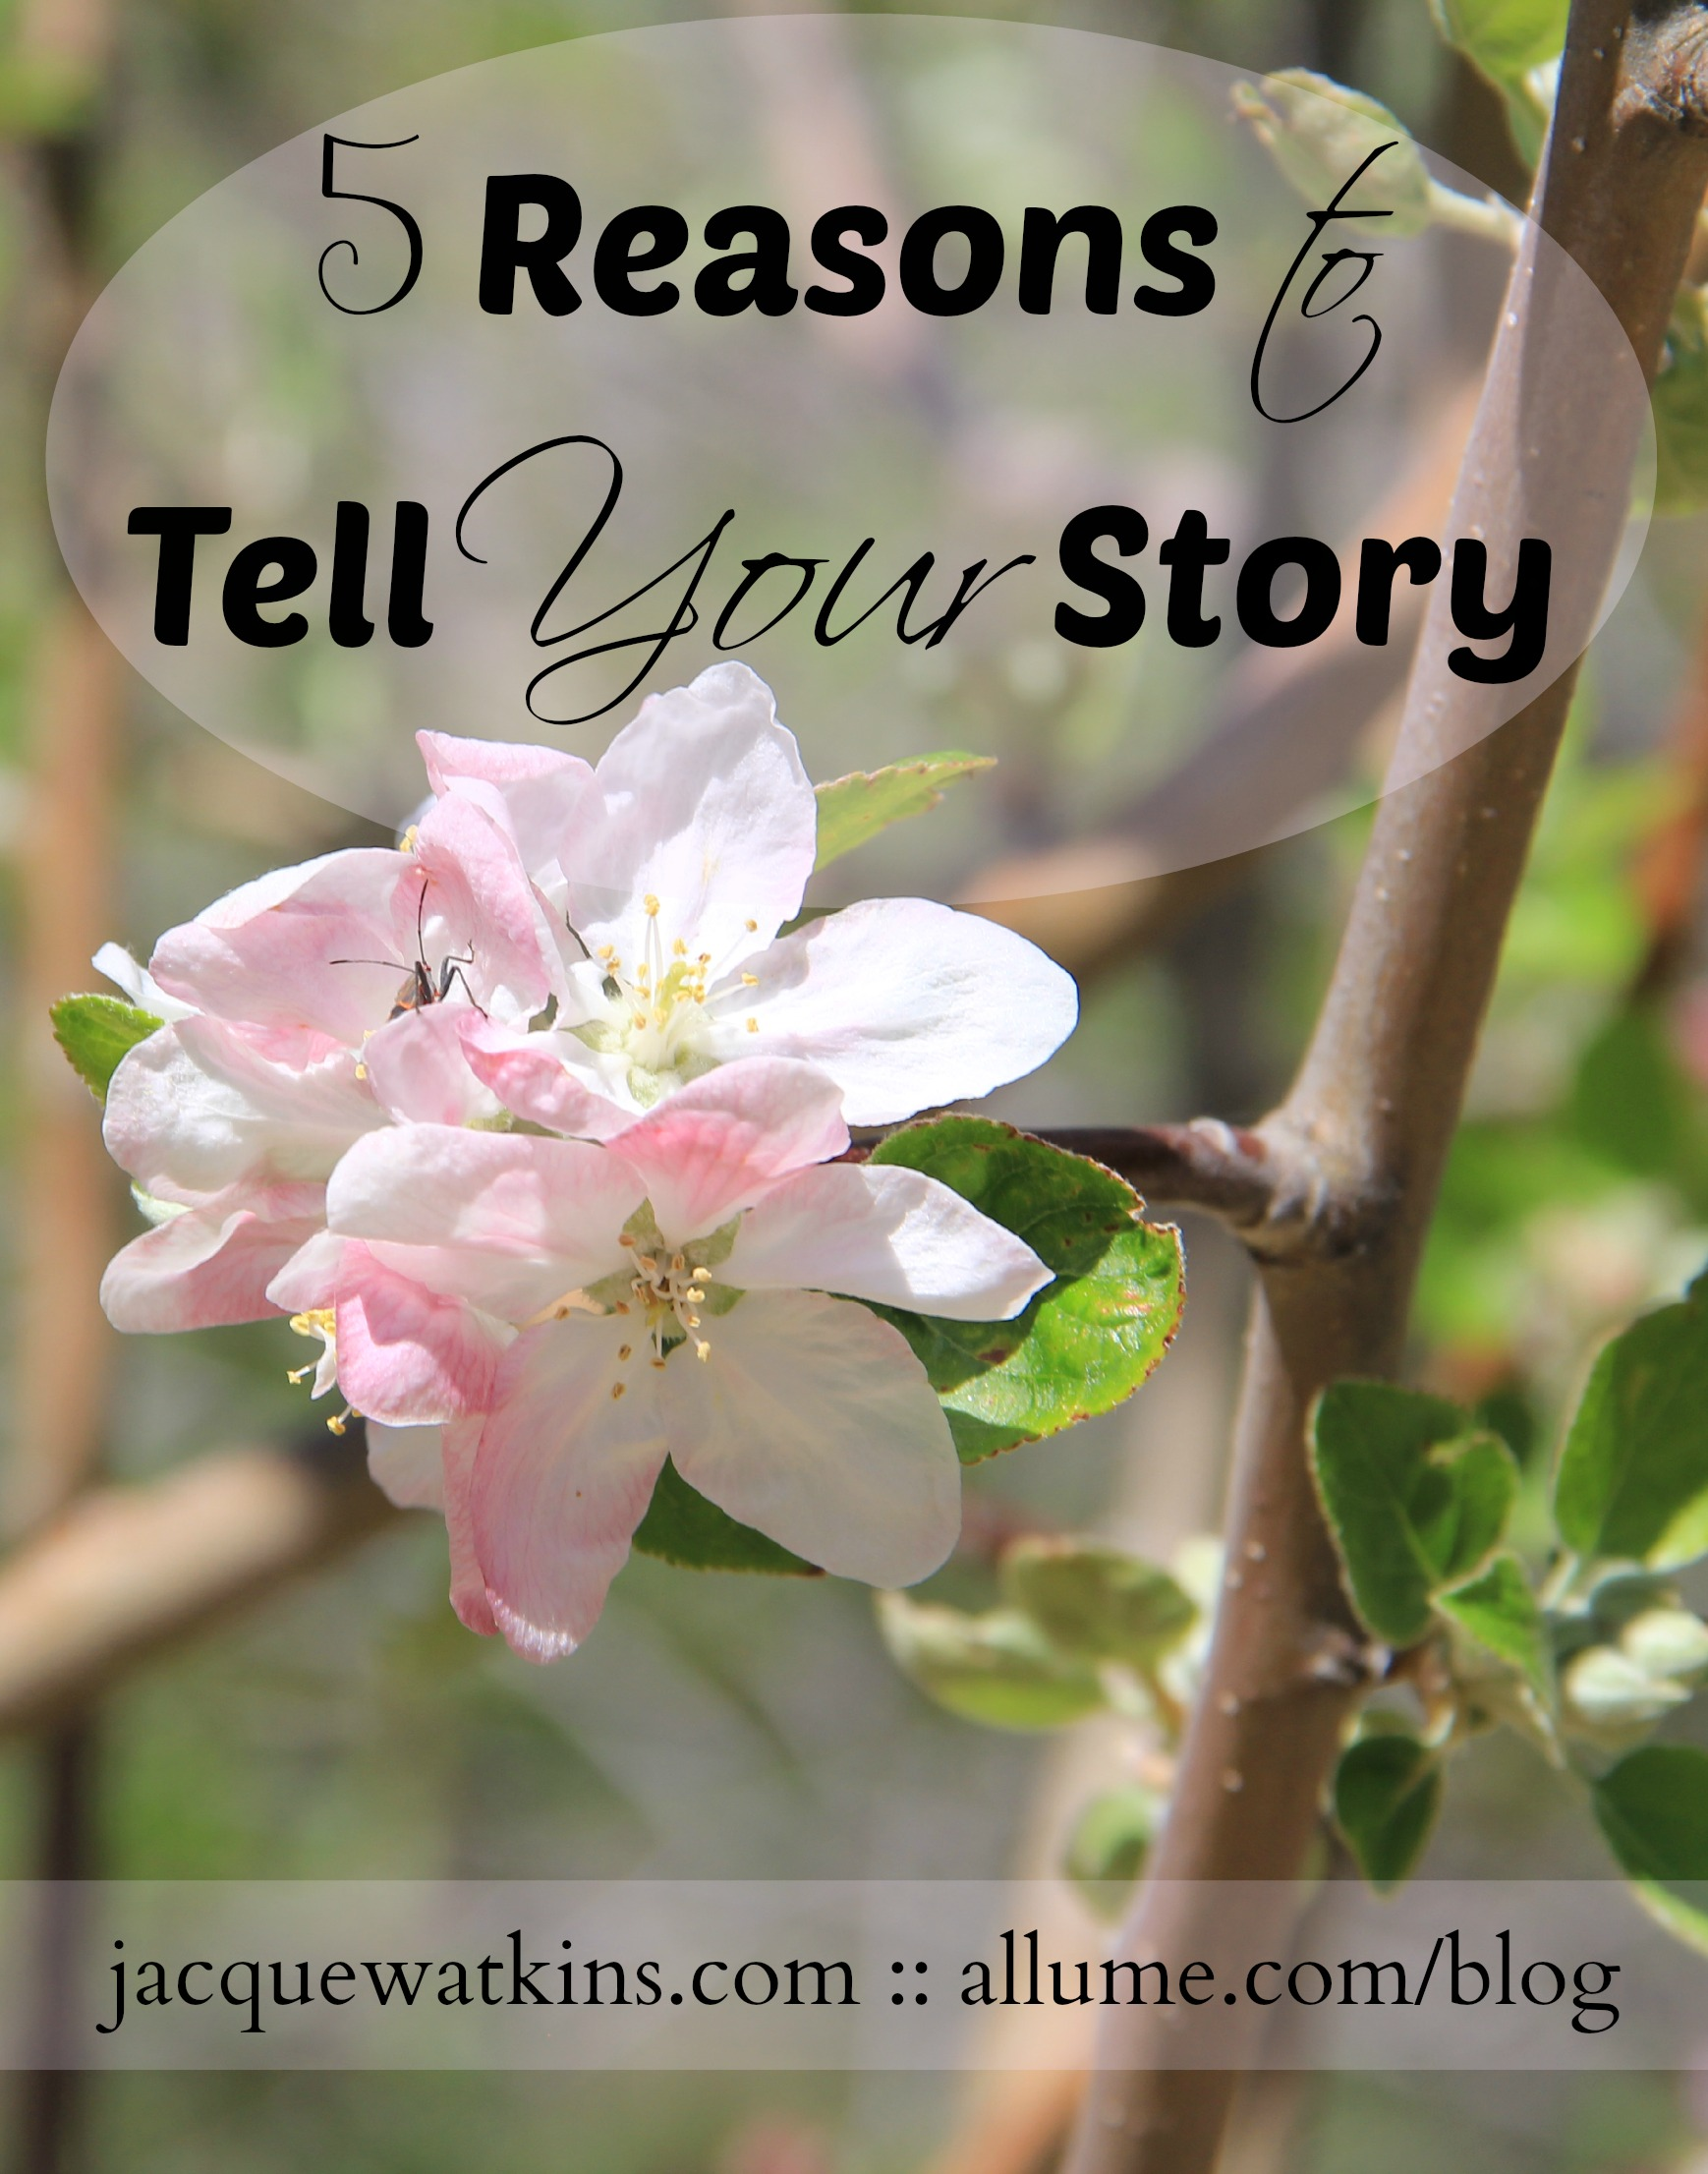 Five Reasons to Tell Your Story {Allume}